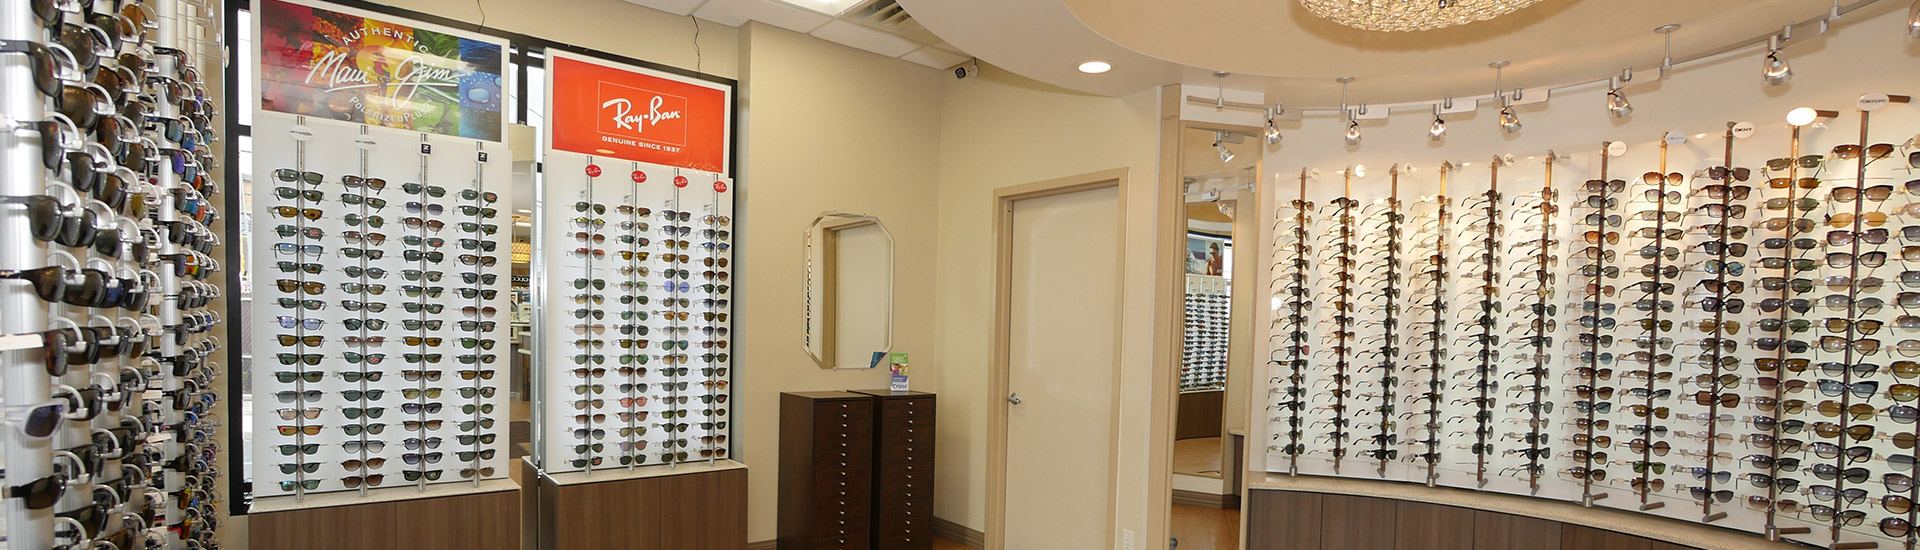 Display Of Eyeglasses